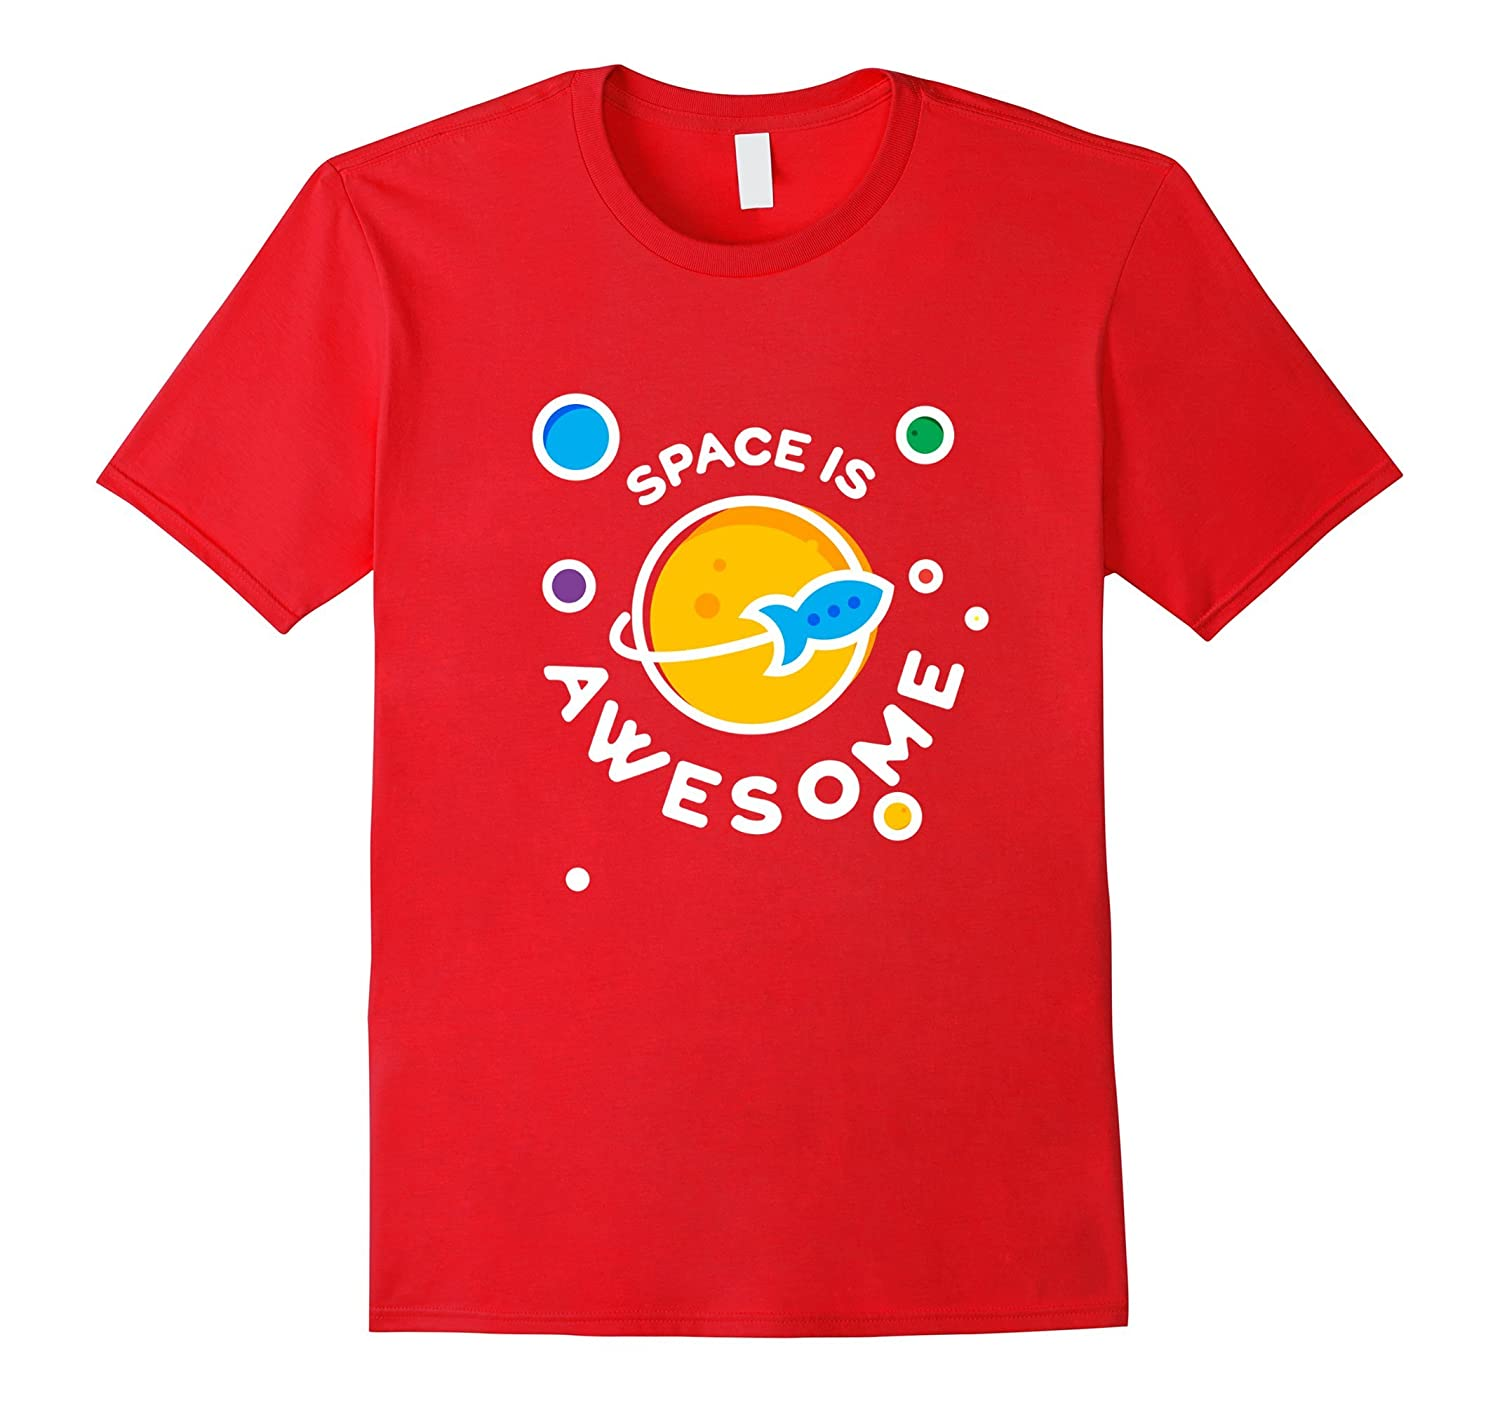 Kids space shirt - Space is awesome - Gift for space lover-PL